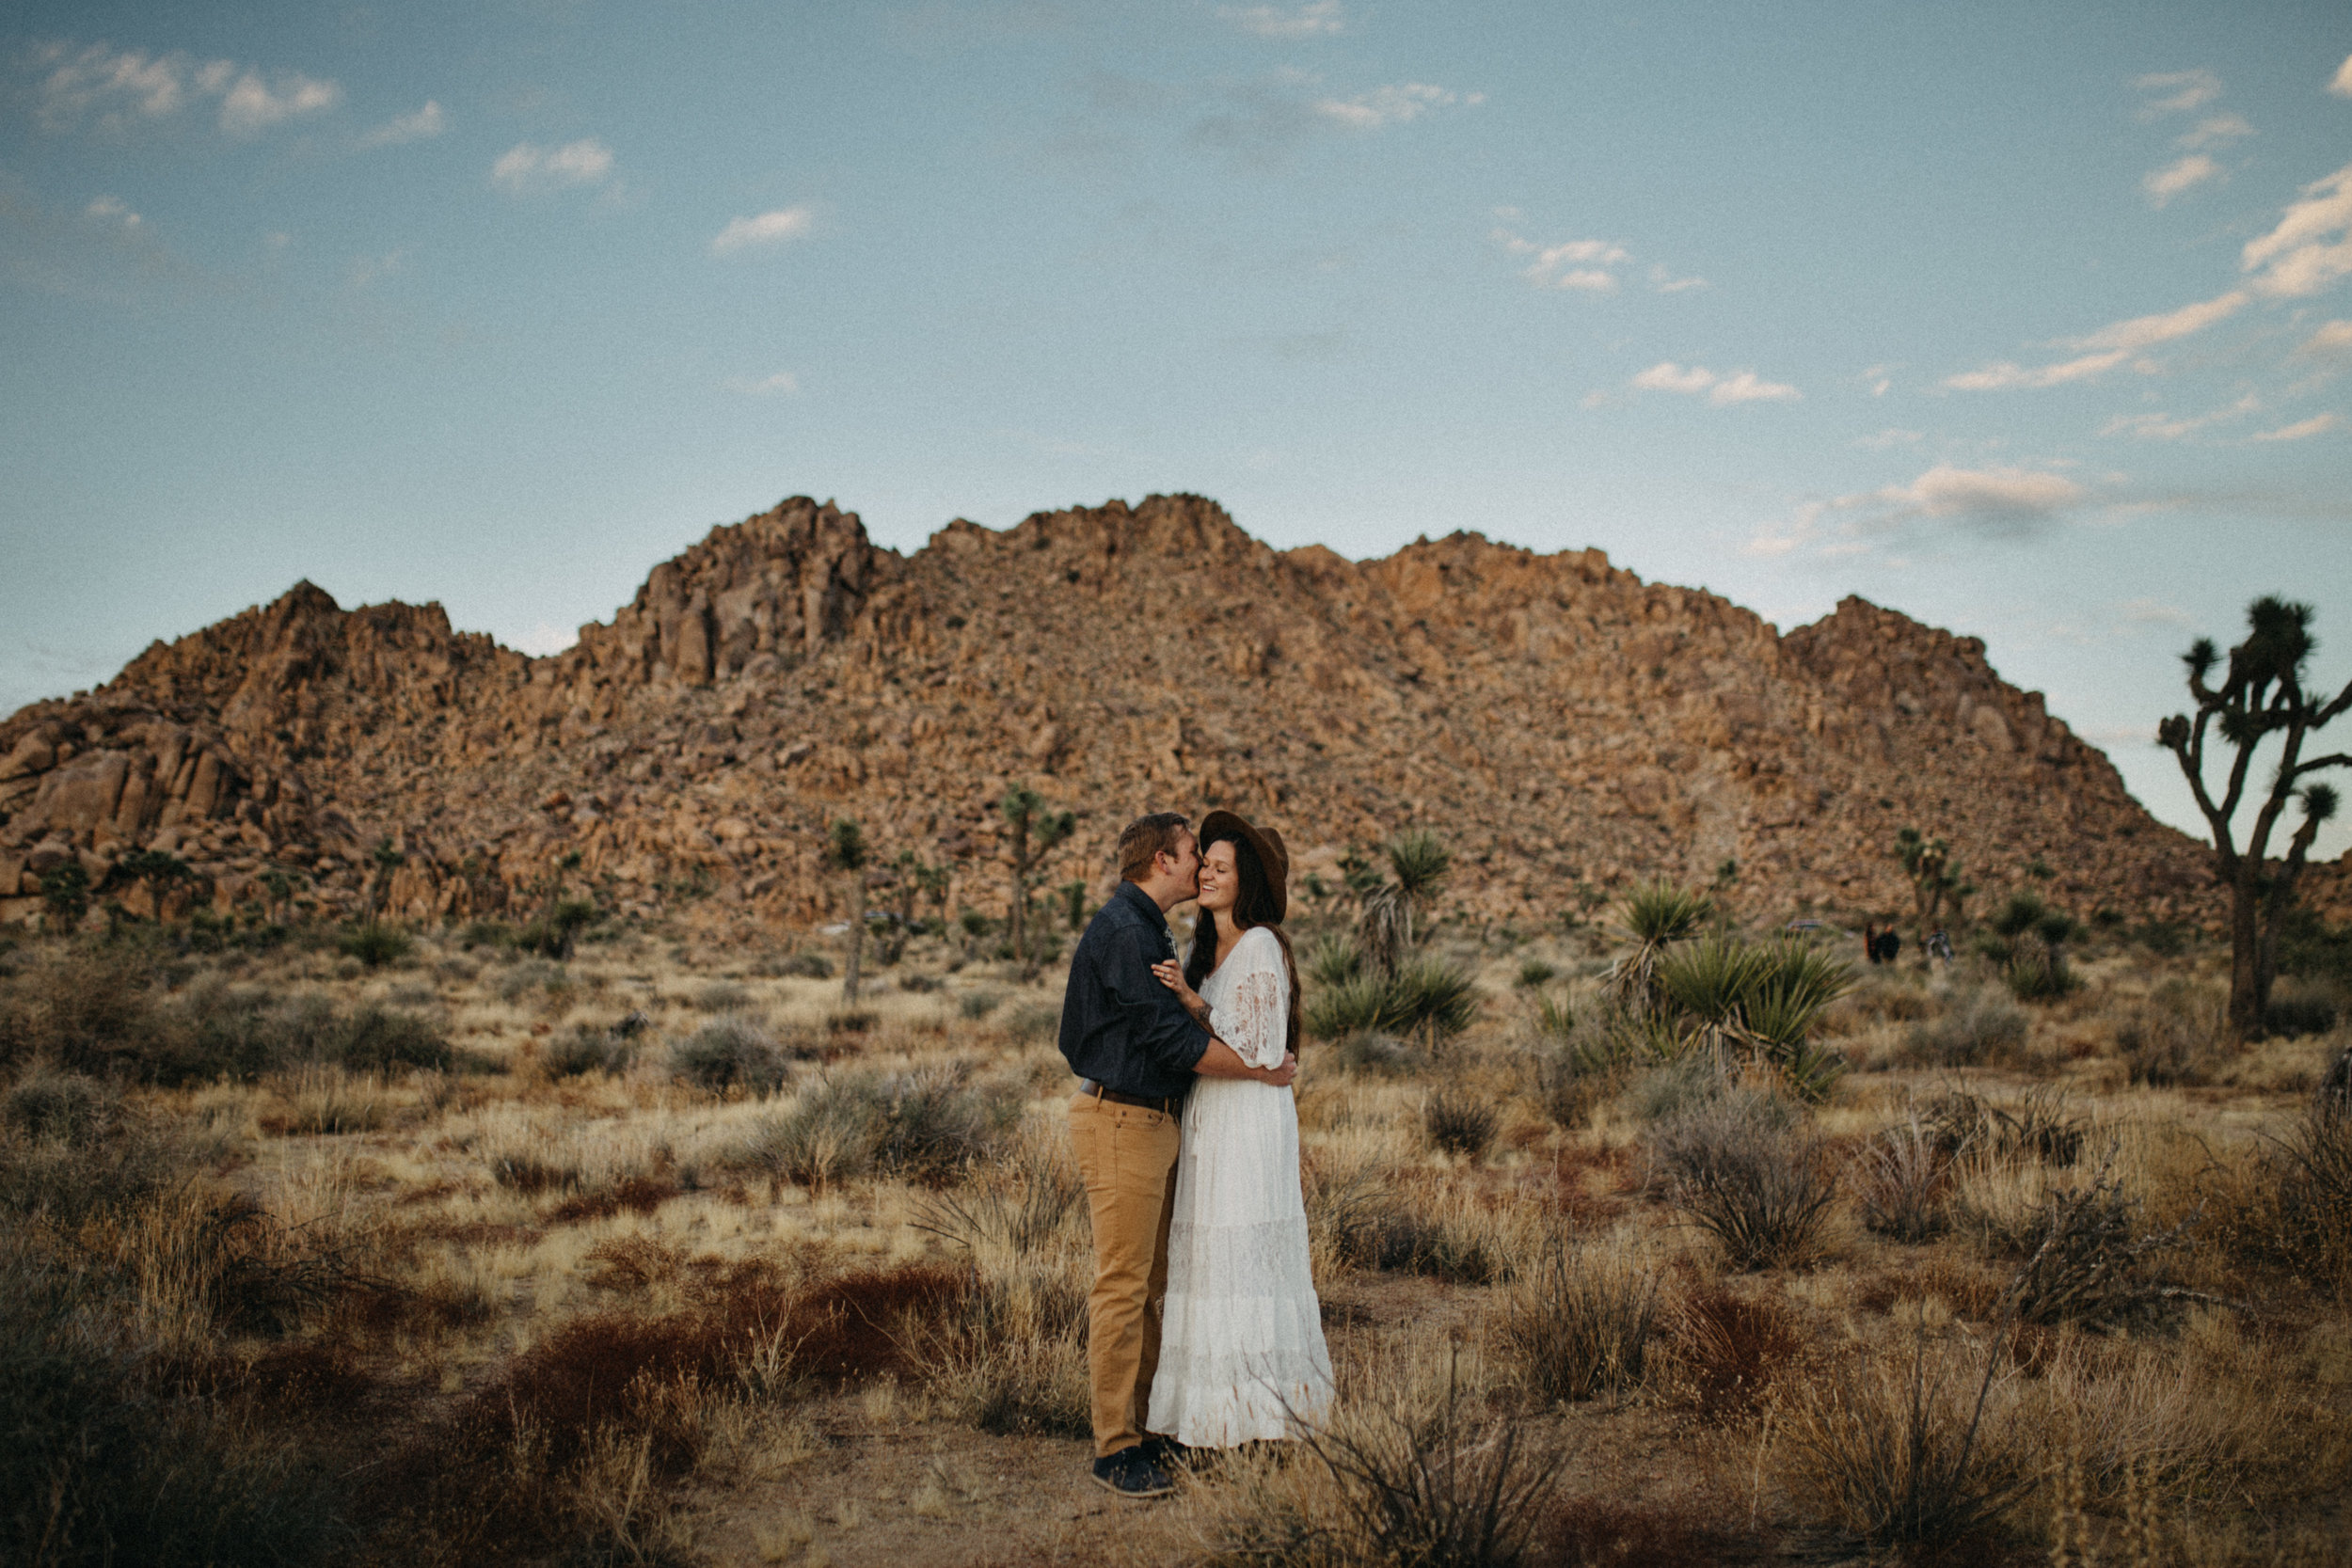 Joshua Tree National Park Adventure Couples Session Photographer Payton Marie Photography-28.jpg